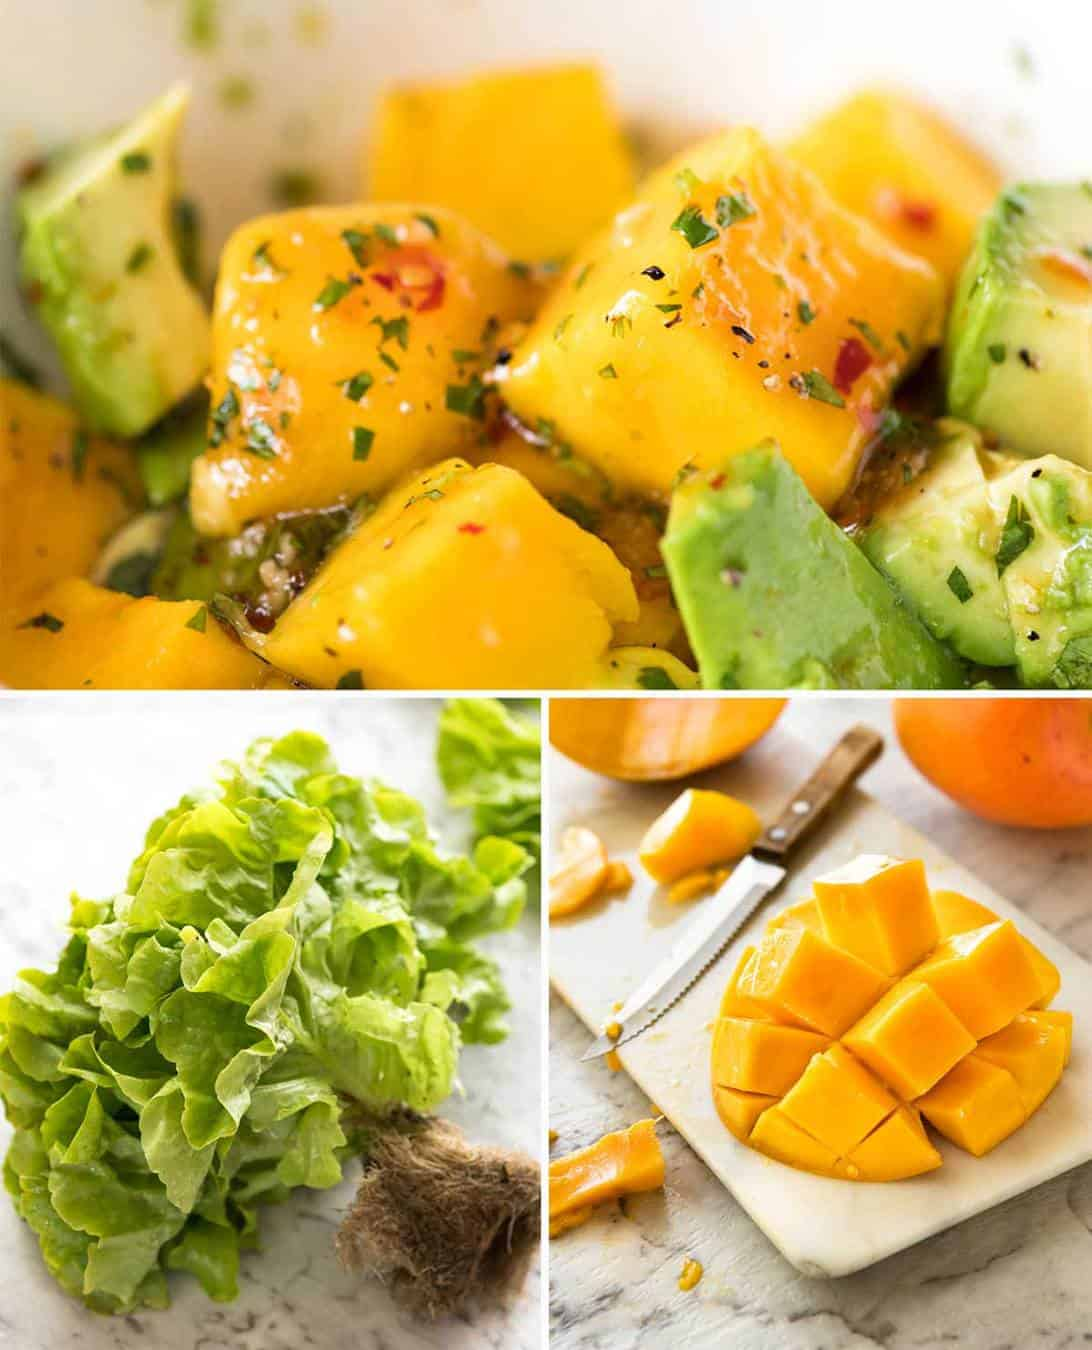 Avocado and Mango Salad recipetineats.com